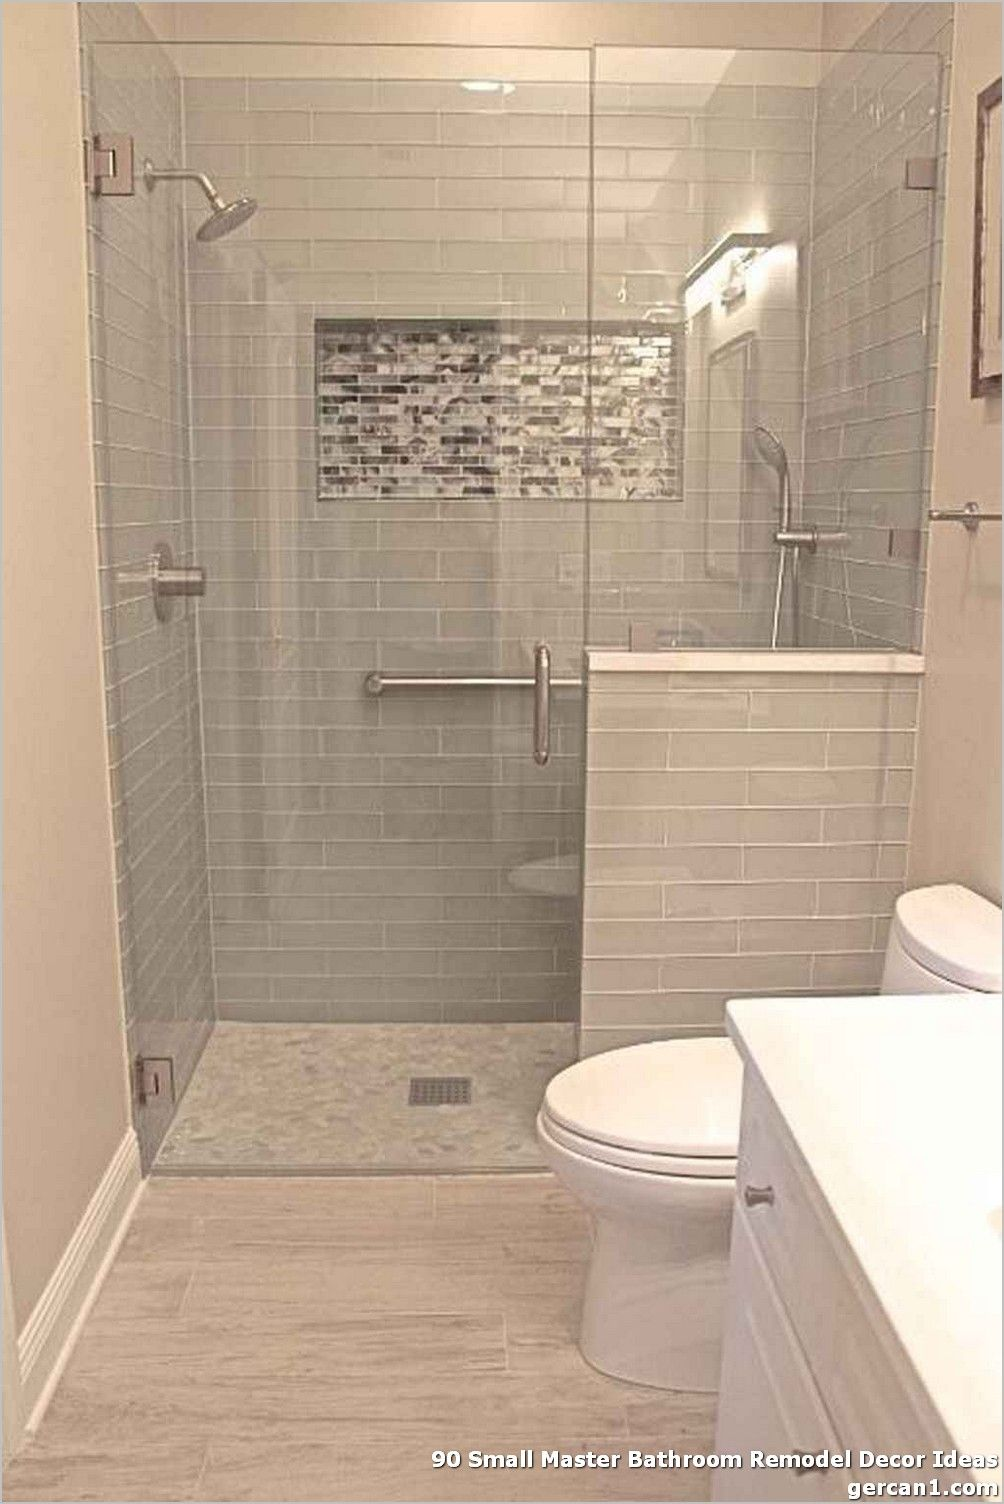 90 Small Master Bathroom Remodel Decor Ideas Bathroom Remodel Shower Cheap Bathroom Remodel Bathroom Design Small